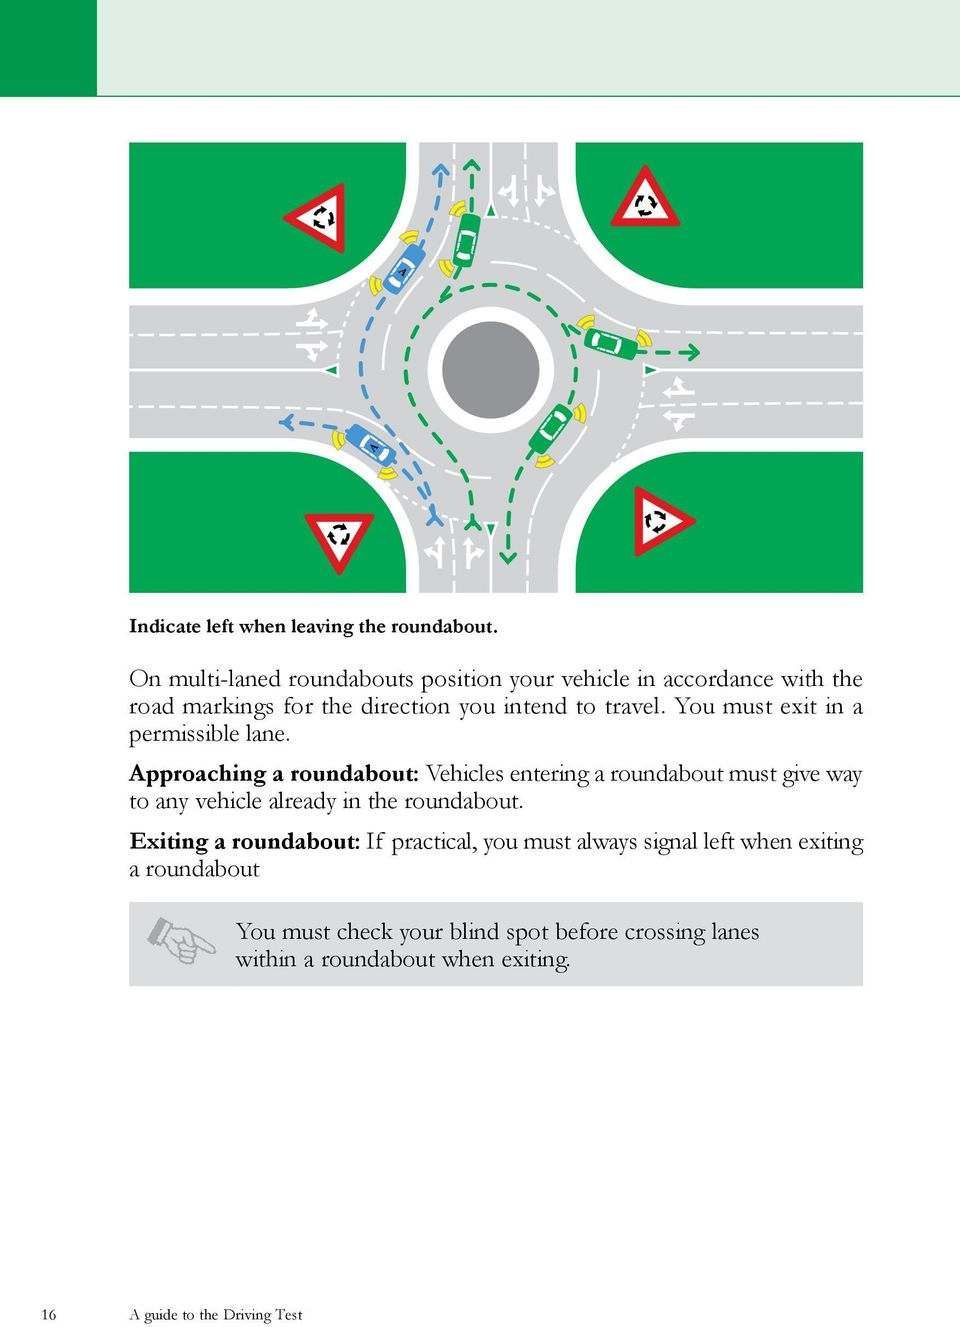 You must exit in a permissible lane.